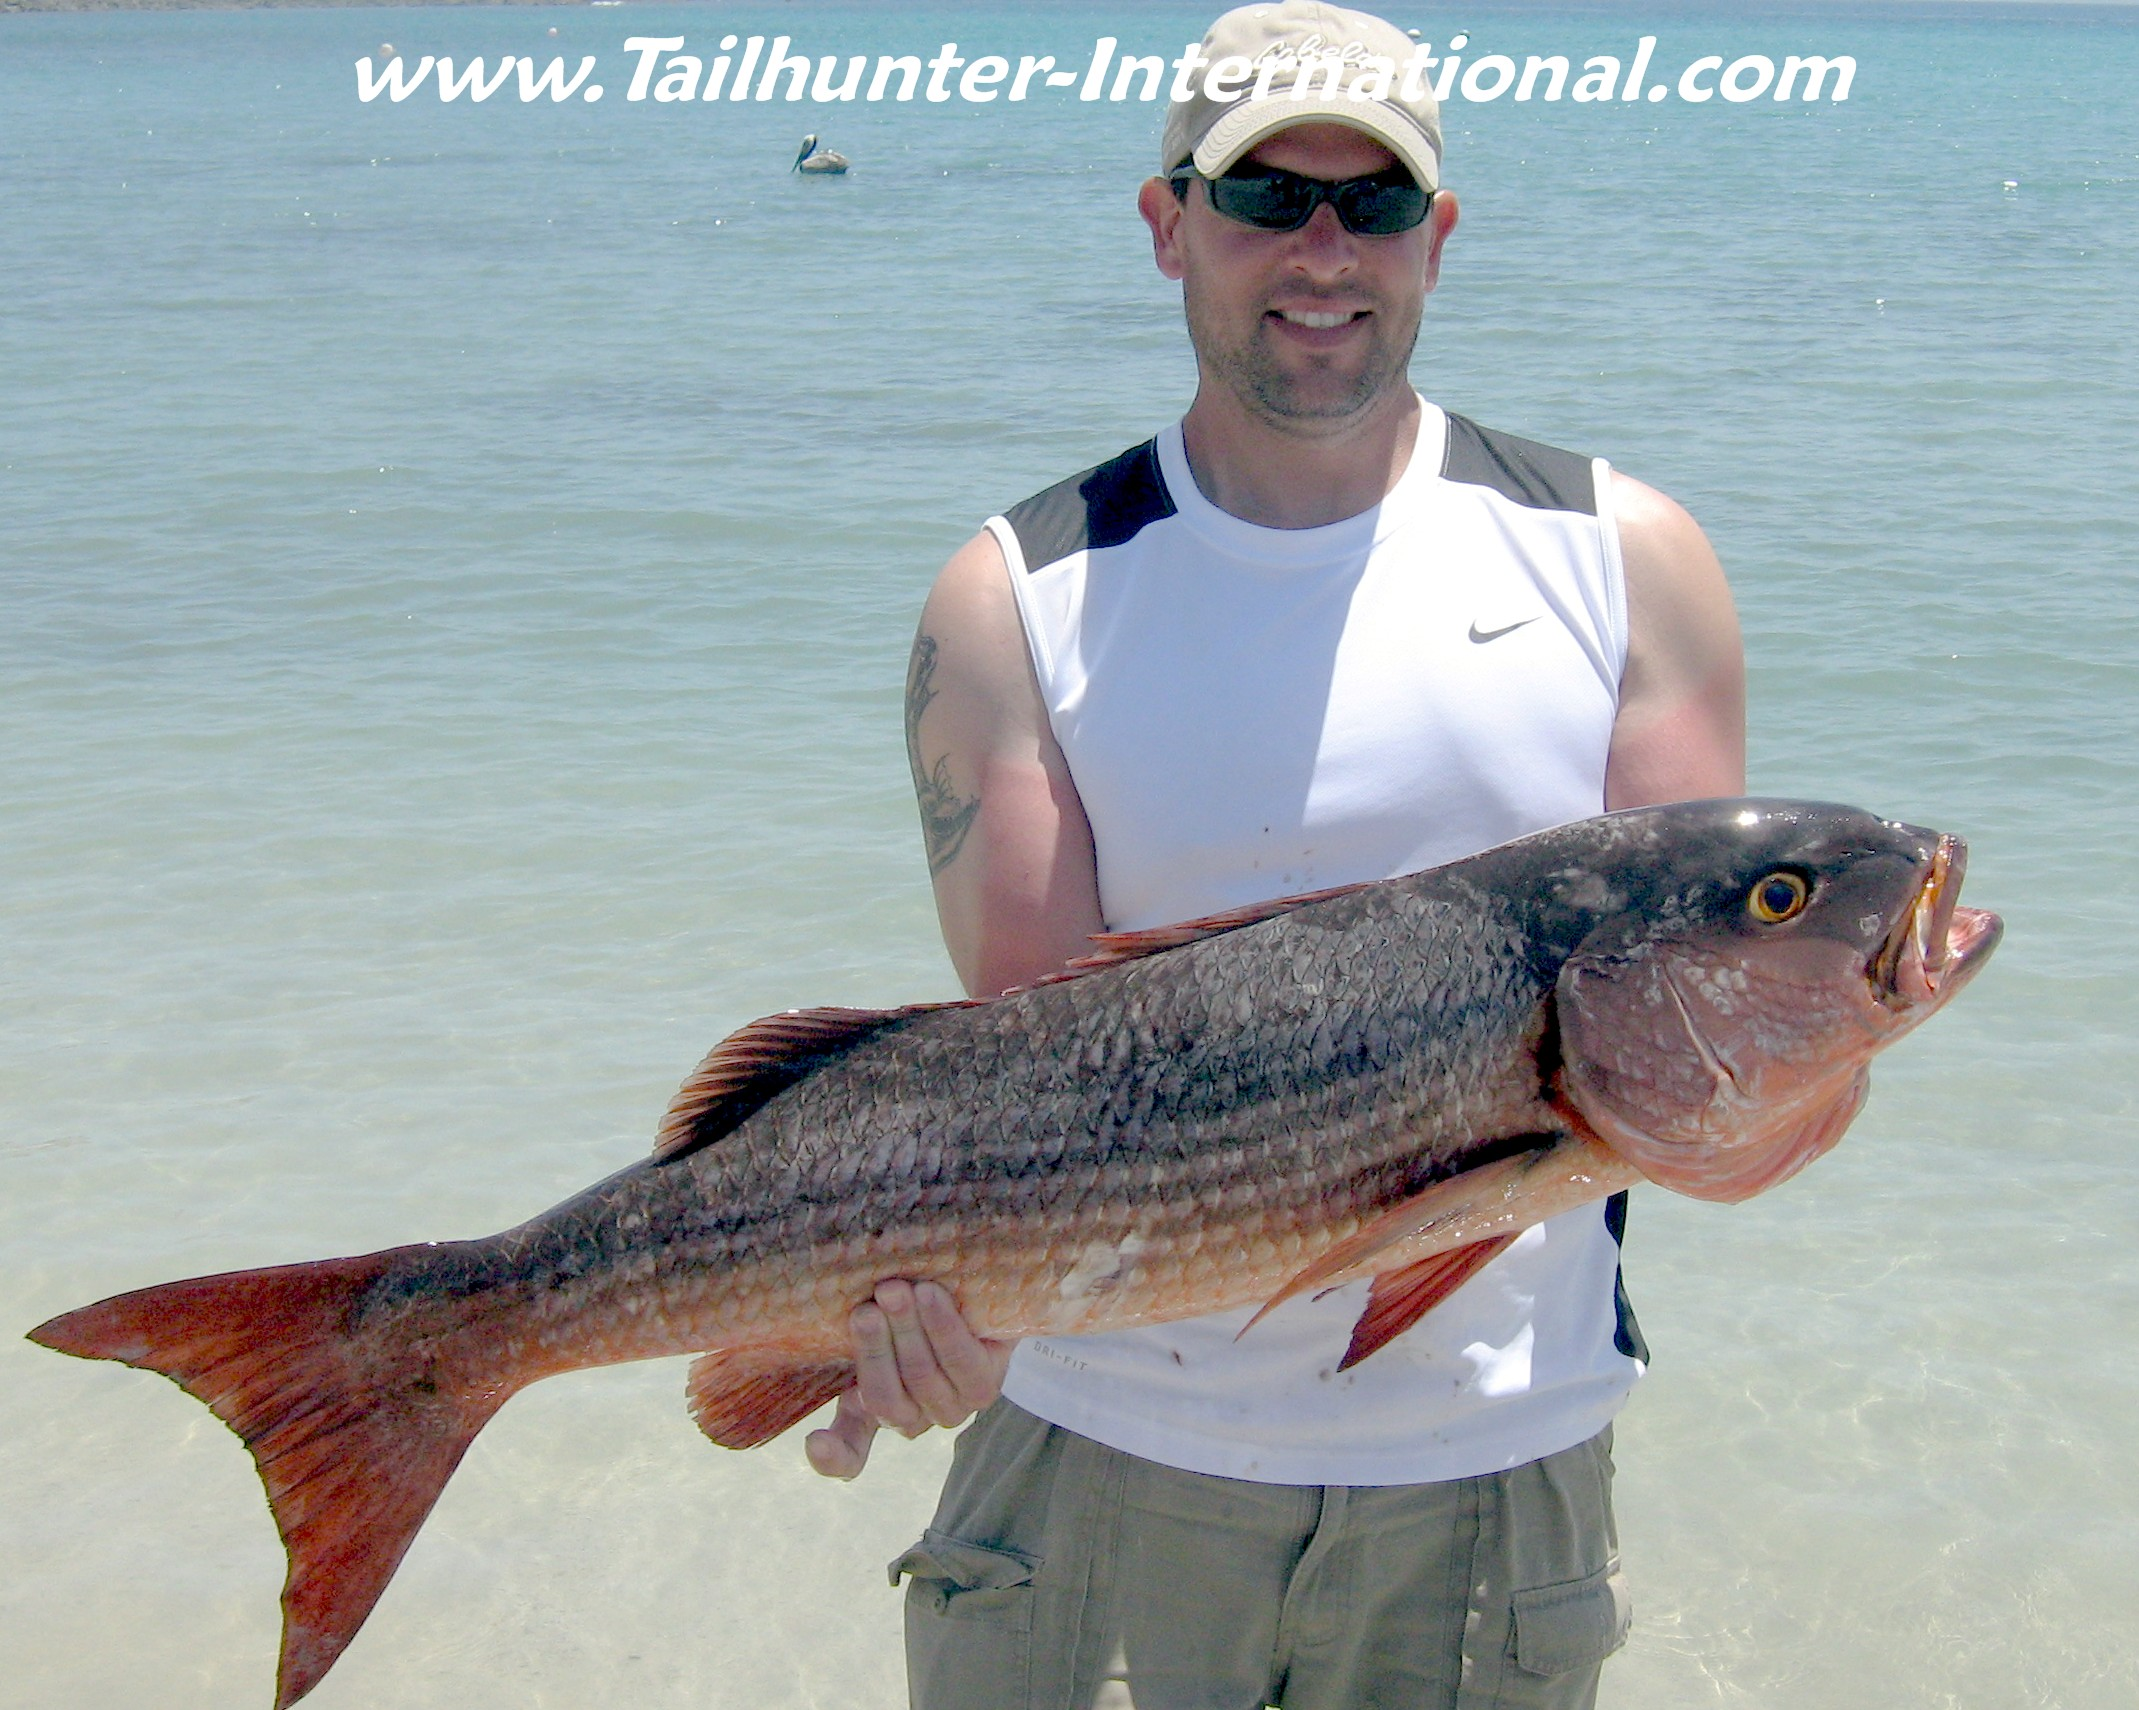 Tailhunter la paz las arenas report april 23rd 2011 get for Fred the fish